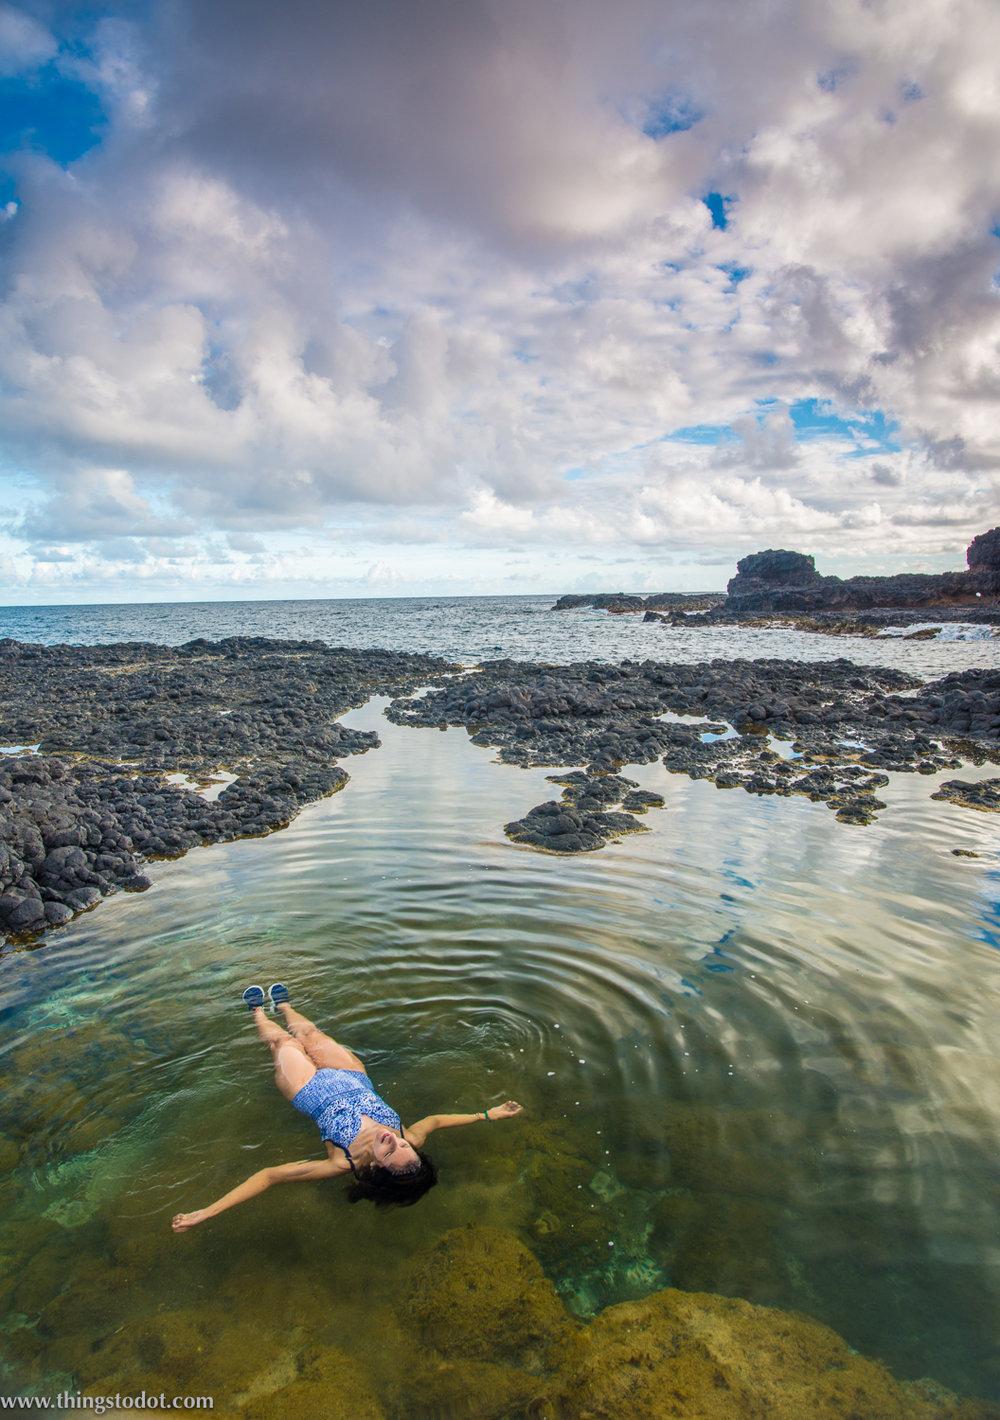 Secret Beach, tide pool, Kauai, Hawaii. Photo: Patrick Kelley, www.pk-worldwide.com. Image©www.thingstodot.com